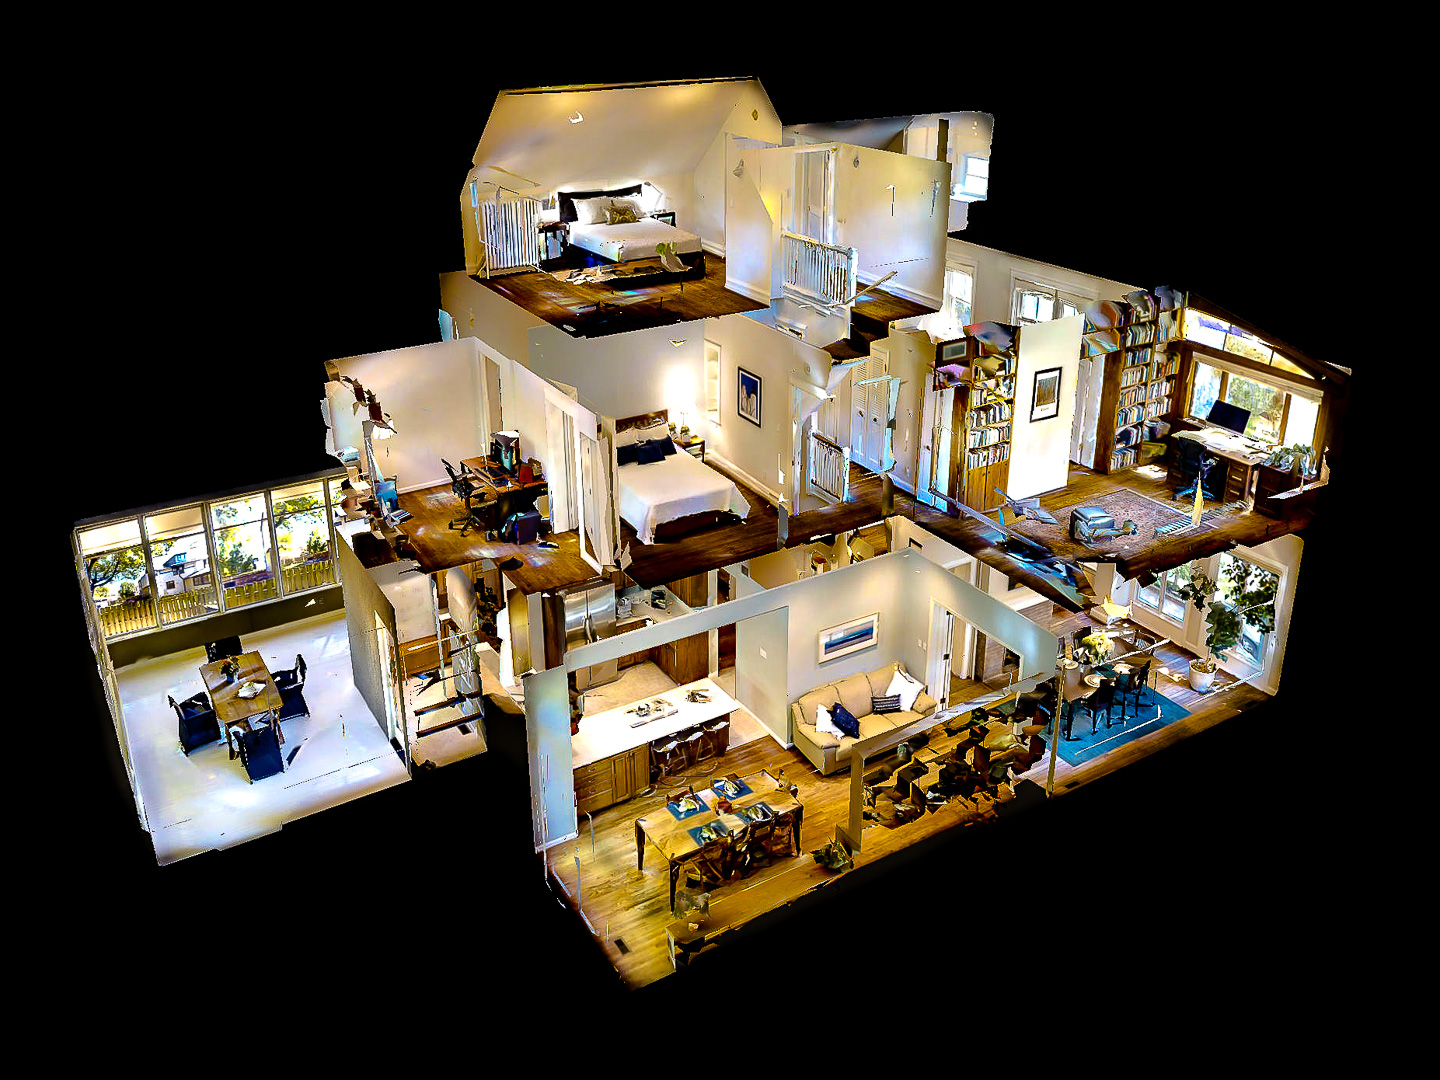 What we do - A Matterport Space is a complete, three-dimensional representation of a real-world location created from 2D (RGB) imagery and 3D data. A Matterport Space can be navigated on a desktop or mobile web browser, and in virtual reality through a Samsung Gear VR, Google Cardboard, or Google Daydream.Matterport Spaces create a complete 3D media ecosystem for businesses to leverage 3D models of real places for many purposes — property marketing, construction, facilities management, and news/entertainment.